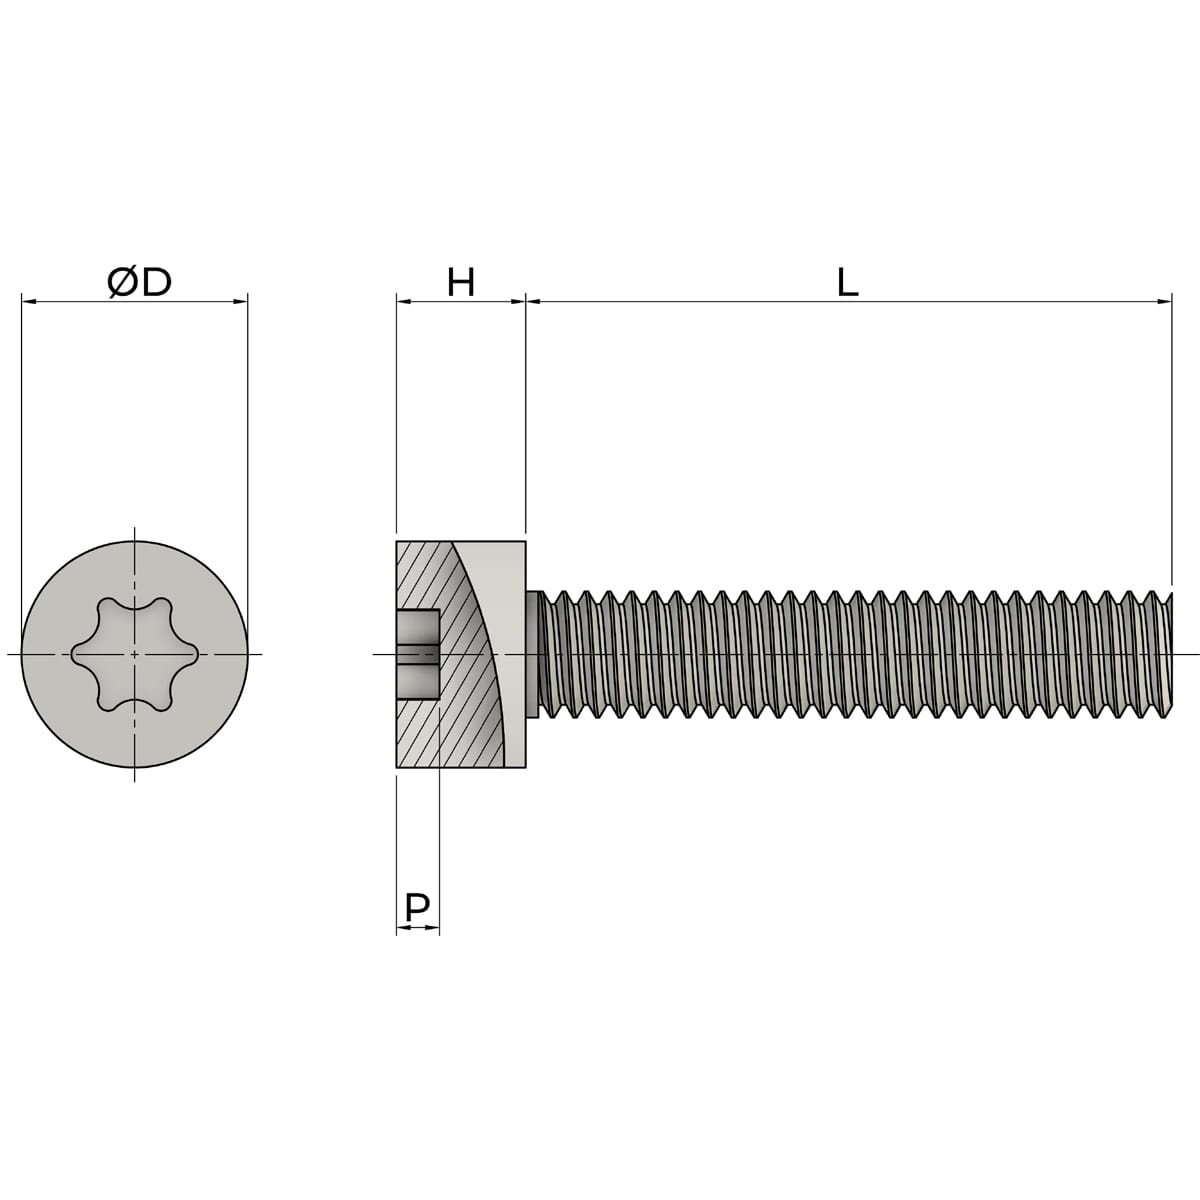 M5 x 8mm Torx Cap Head Screws (ISO 14579) - Marine Stainless Steel (A4) Drawing